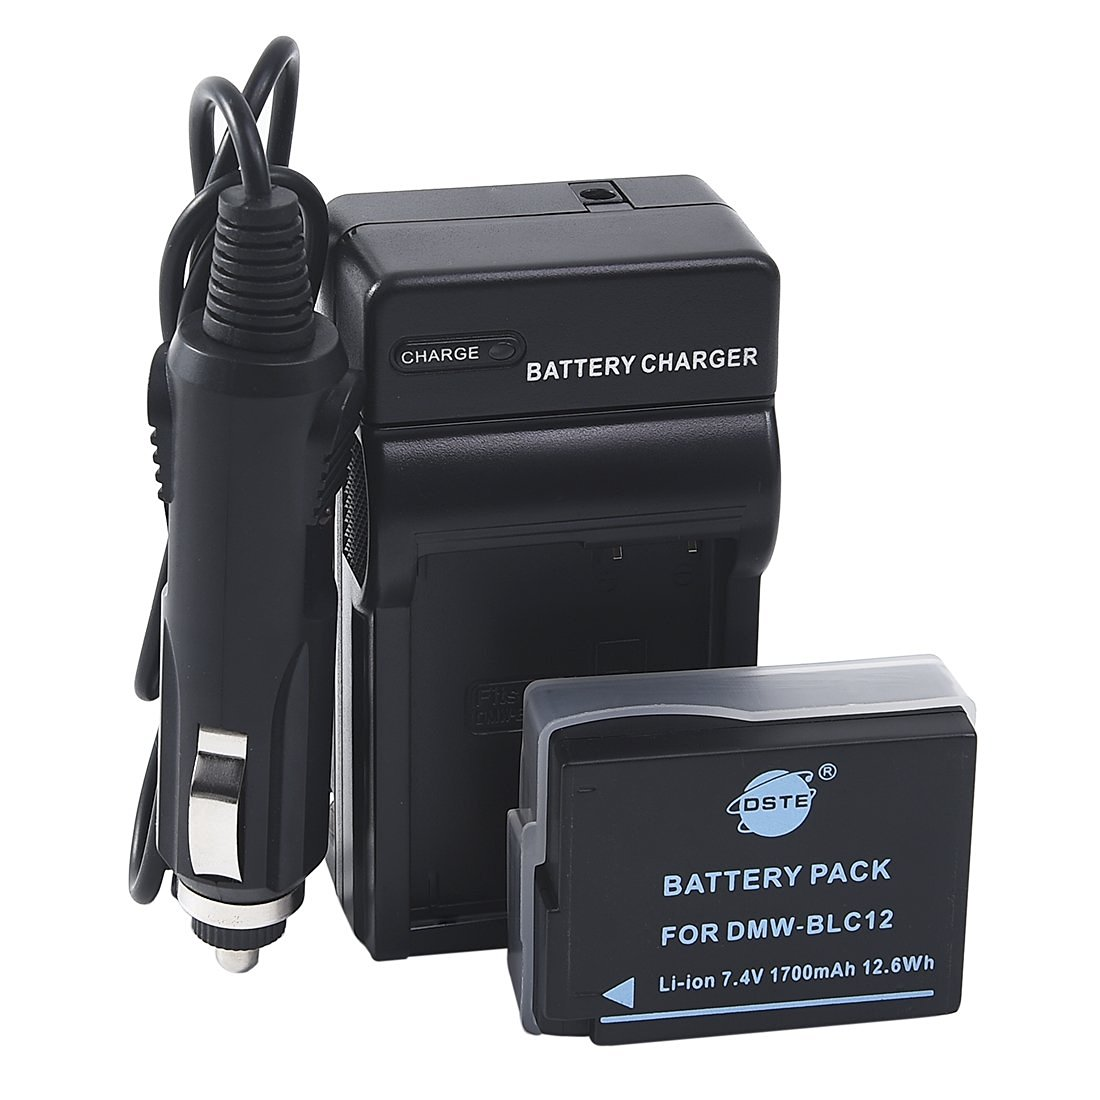 DSTE DMW-BLC12 Battery + DC114 Travel and Car Charger Adapter for Panasonic Lumix DMC-G5 G6 G7 GH2 GX8 FZ200 DMC-FZ2500 DMC-FZ2000 Leica Q Camera as DMW-BLC12E BP-DC12E